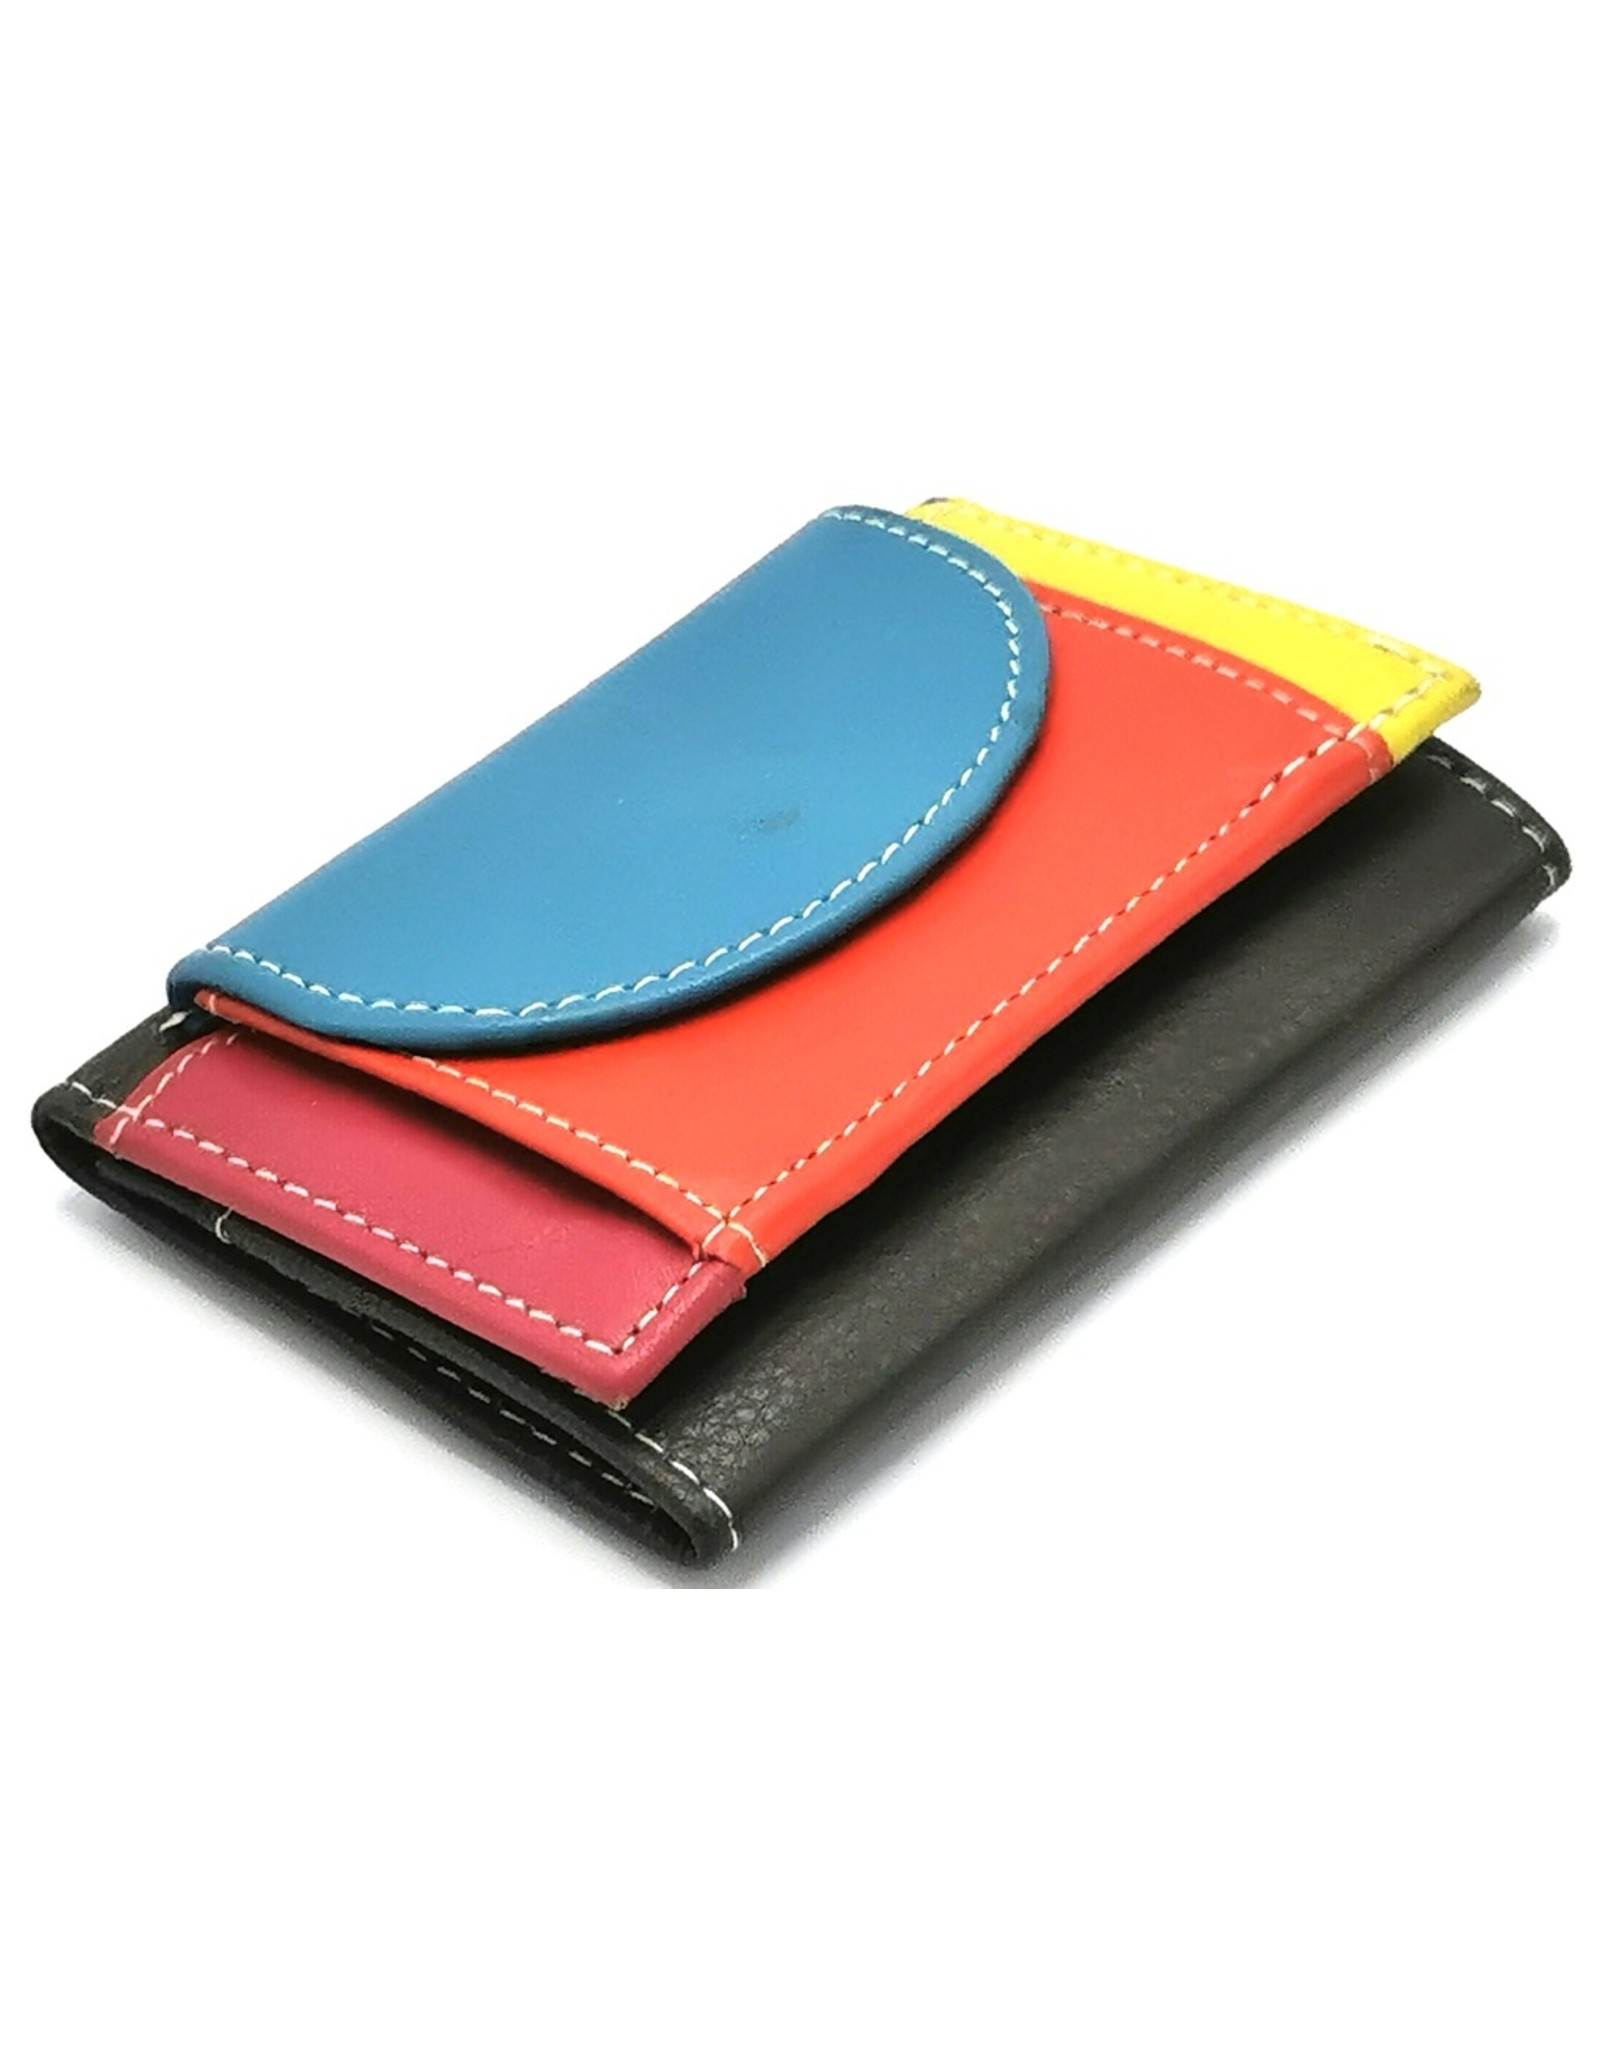 Hutmann Leather Wallets - Genuine leather colored mini wallet